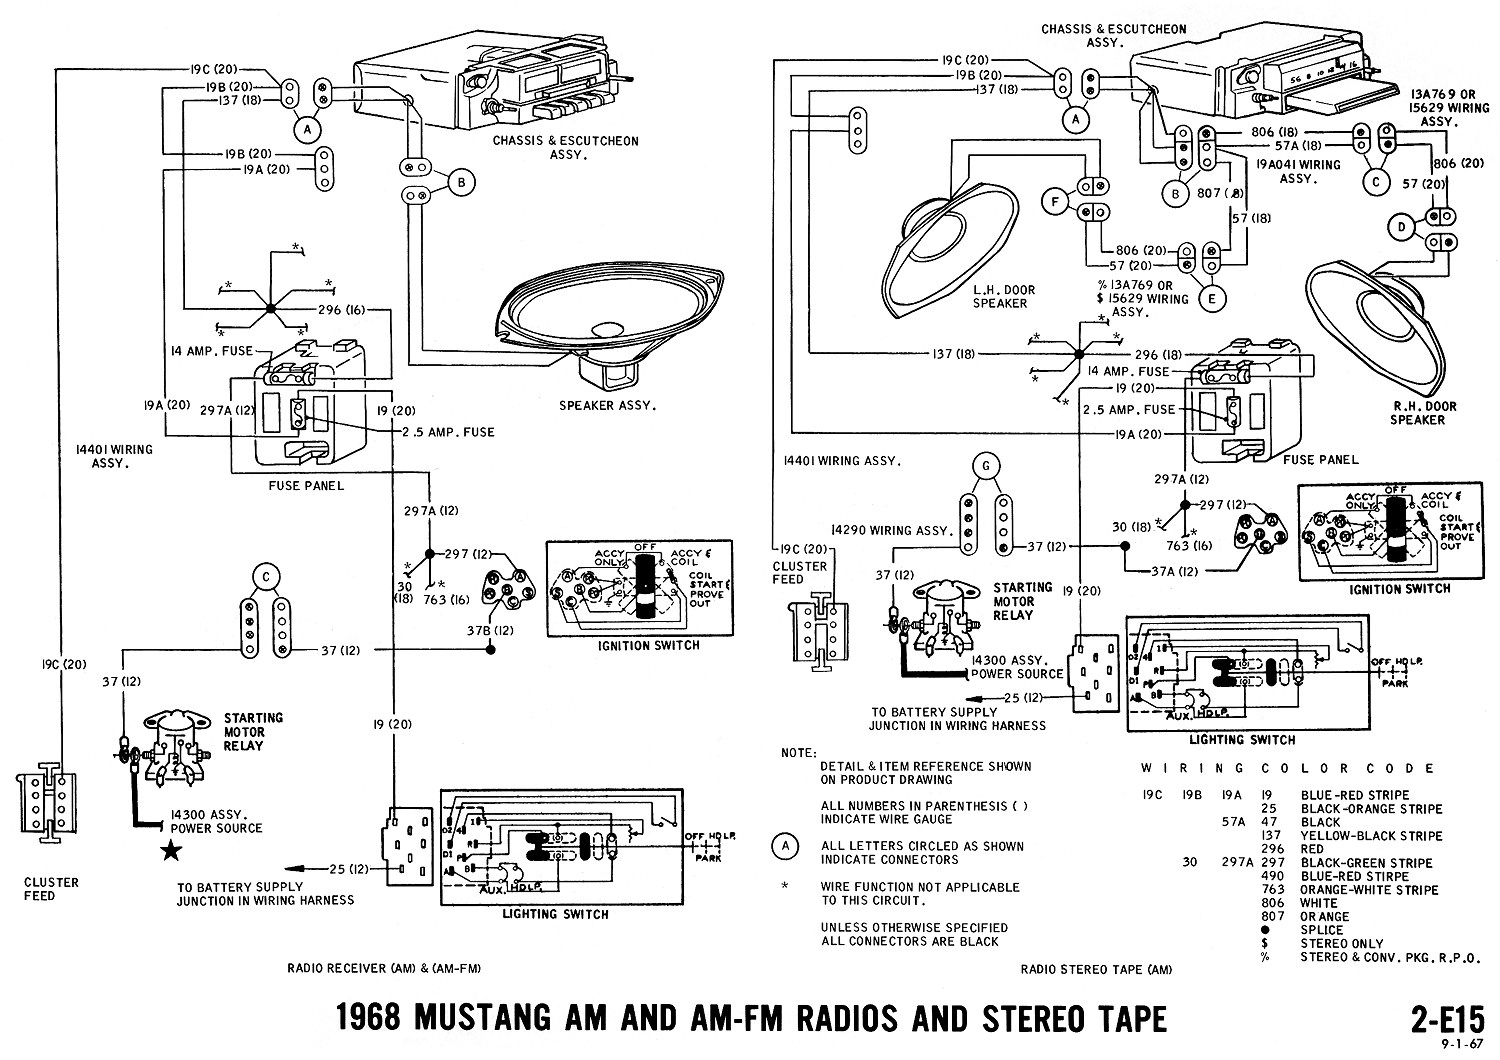 Viewtopic furthermore Wiring Diagram For 88 Mustang as well 1967 Mustang Wiring And Vacuum Diagrams furthermore 641fg 1971 Ford F100 Jumping Battery Terminal Starter Relay Solenoid as well 1977 Corvette Starter Wiring Diagram. on 68 ford starter solenoid diagram